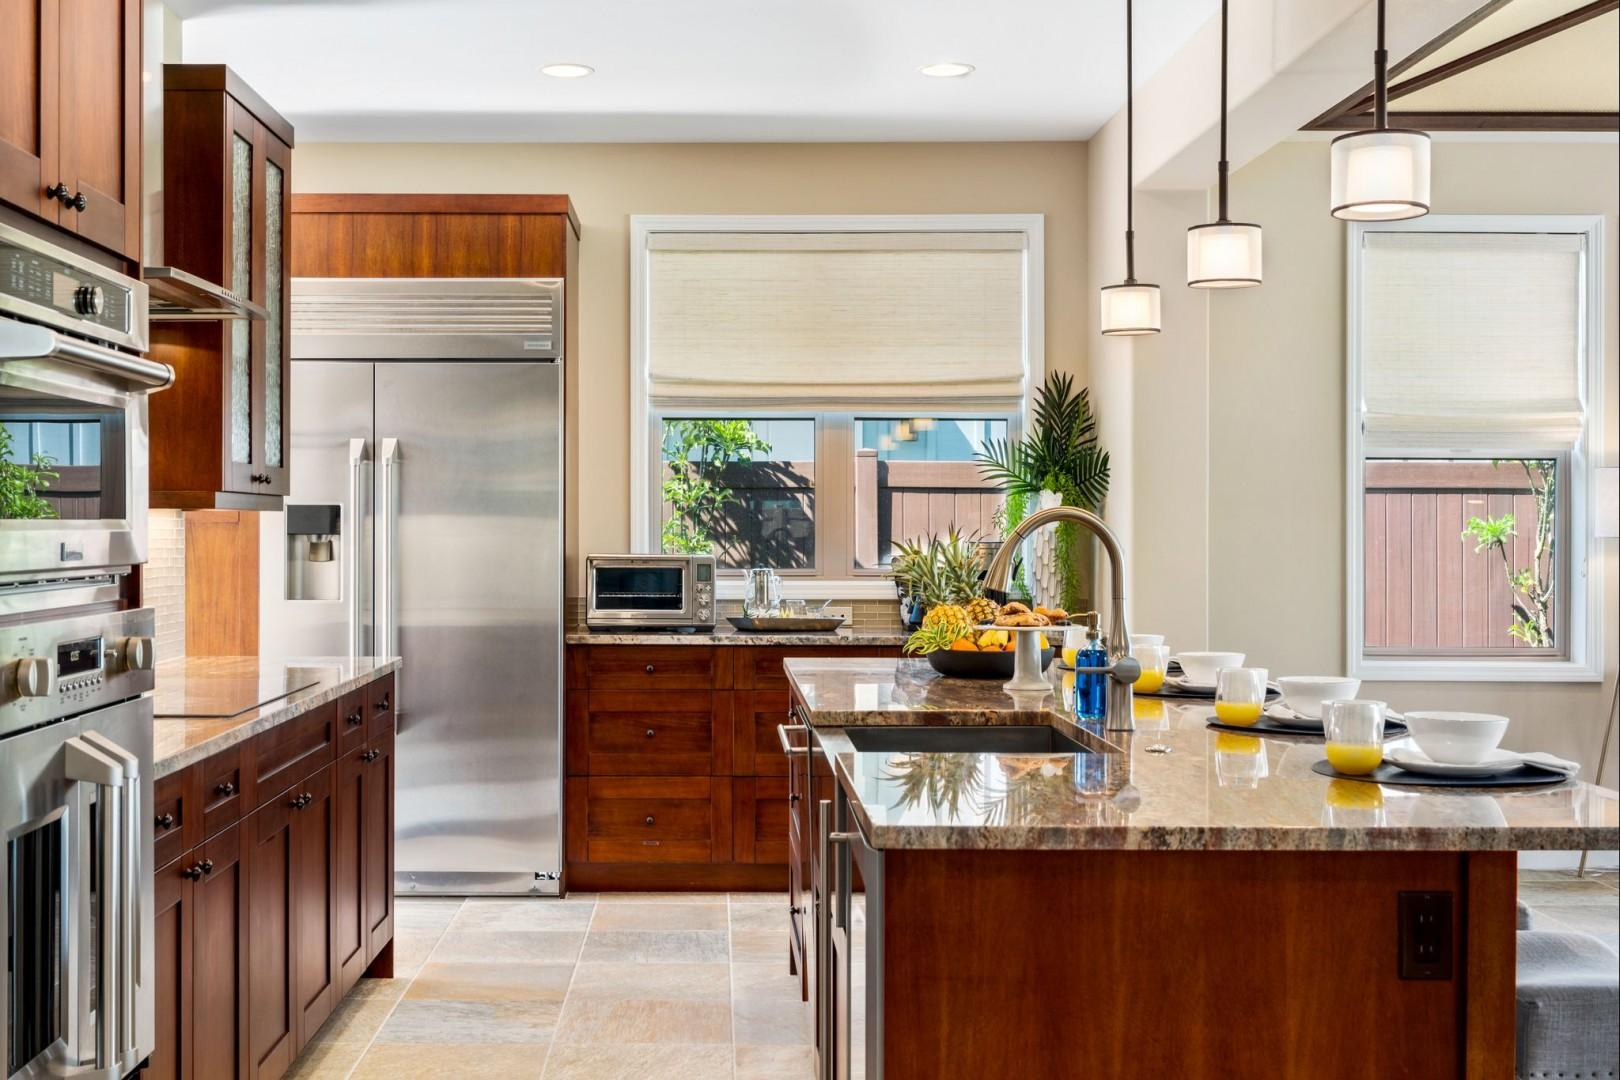 From the wine fridge to the induction range this kitchen has all you could need